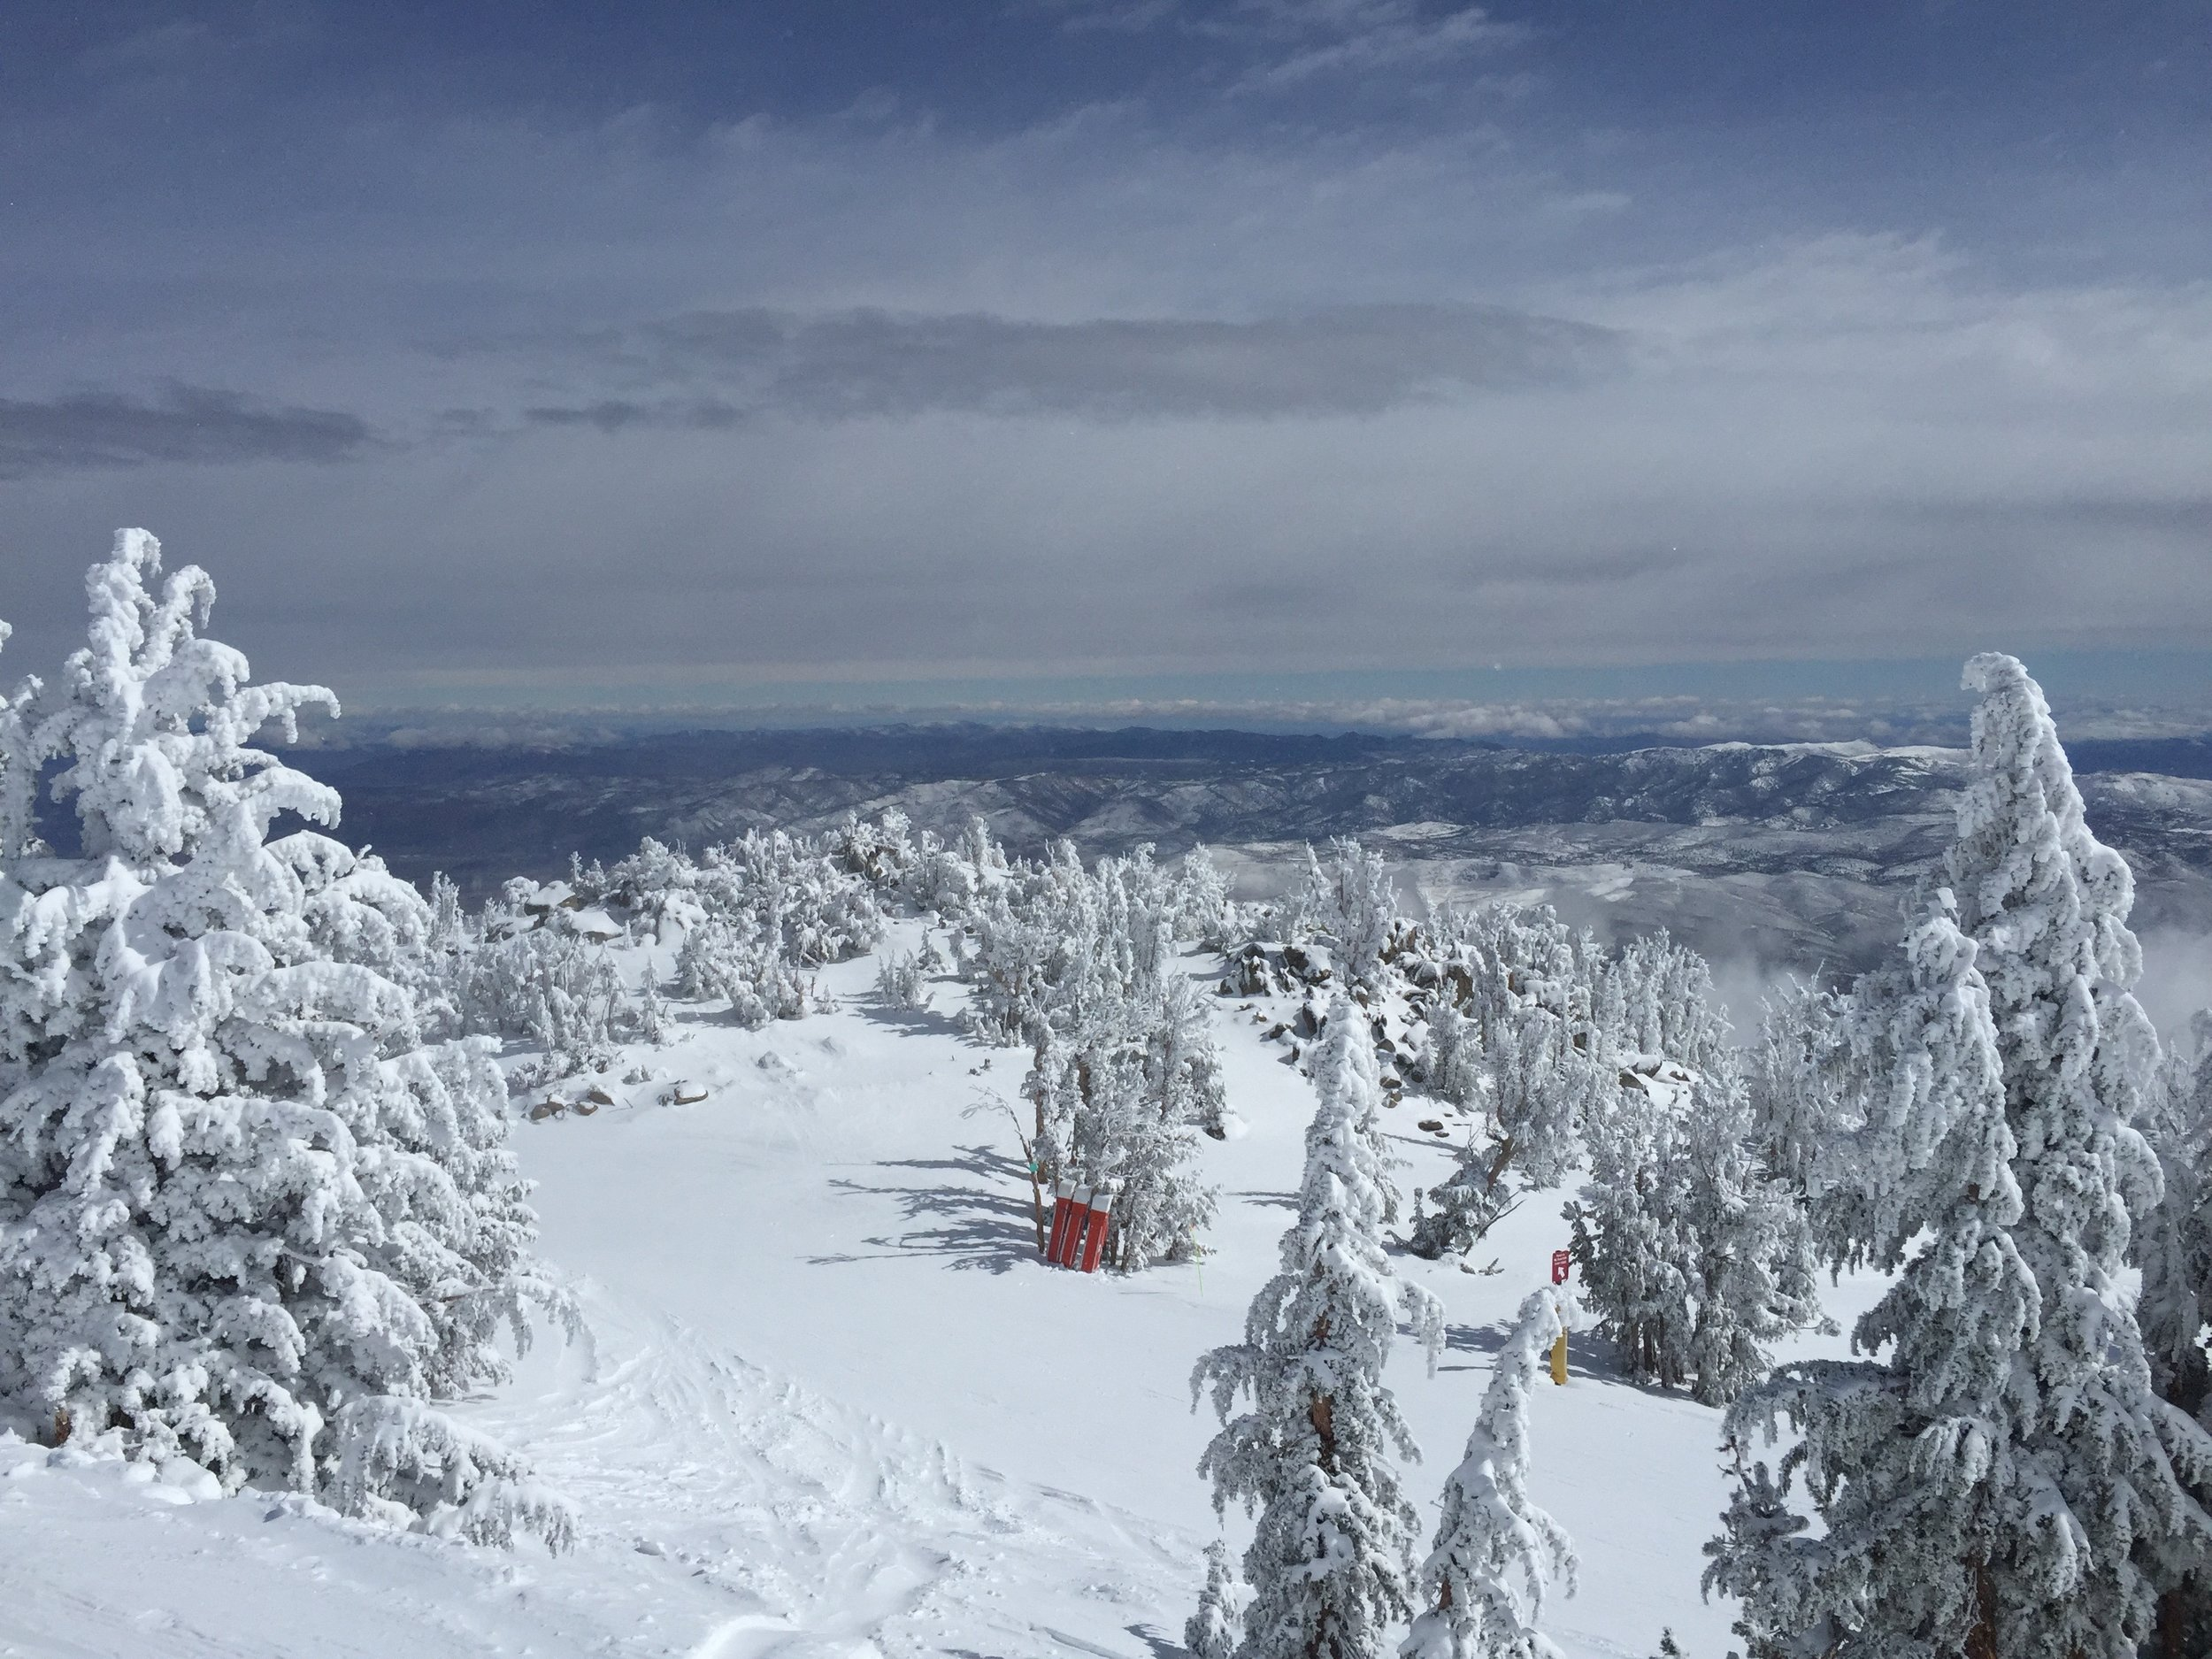 Mt. Rose. Top class skiing just a 40 minute drive from the lab.